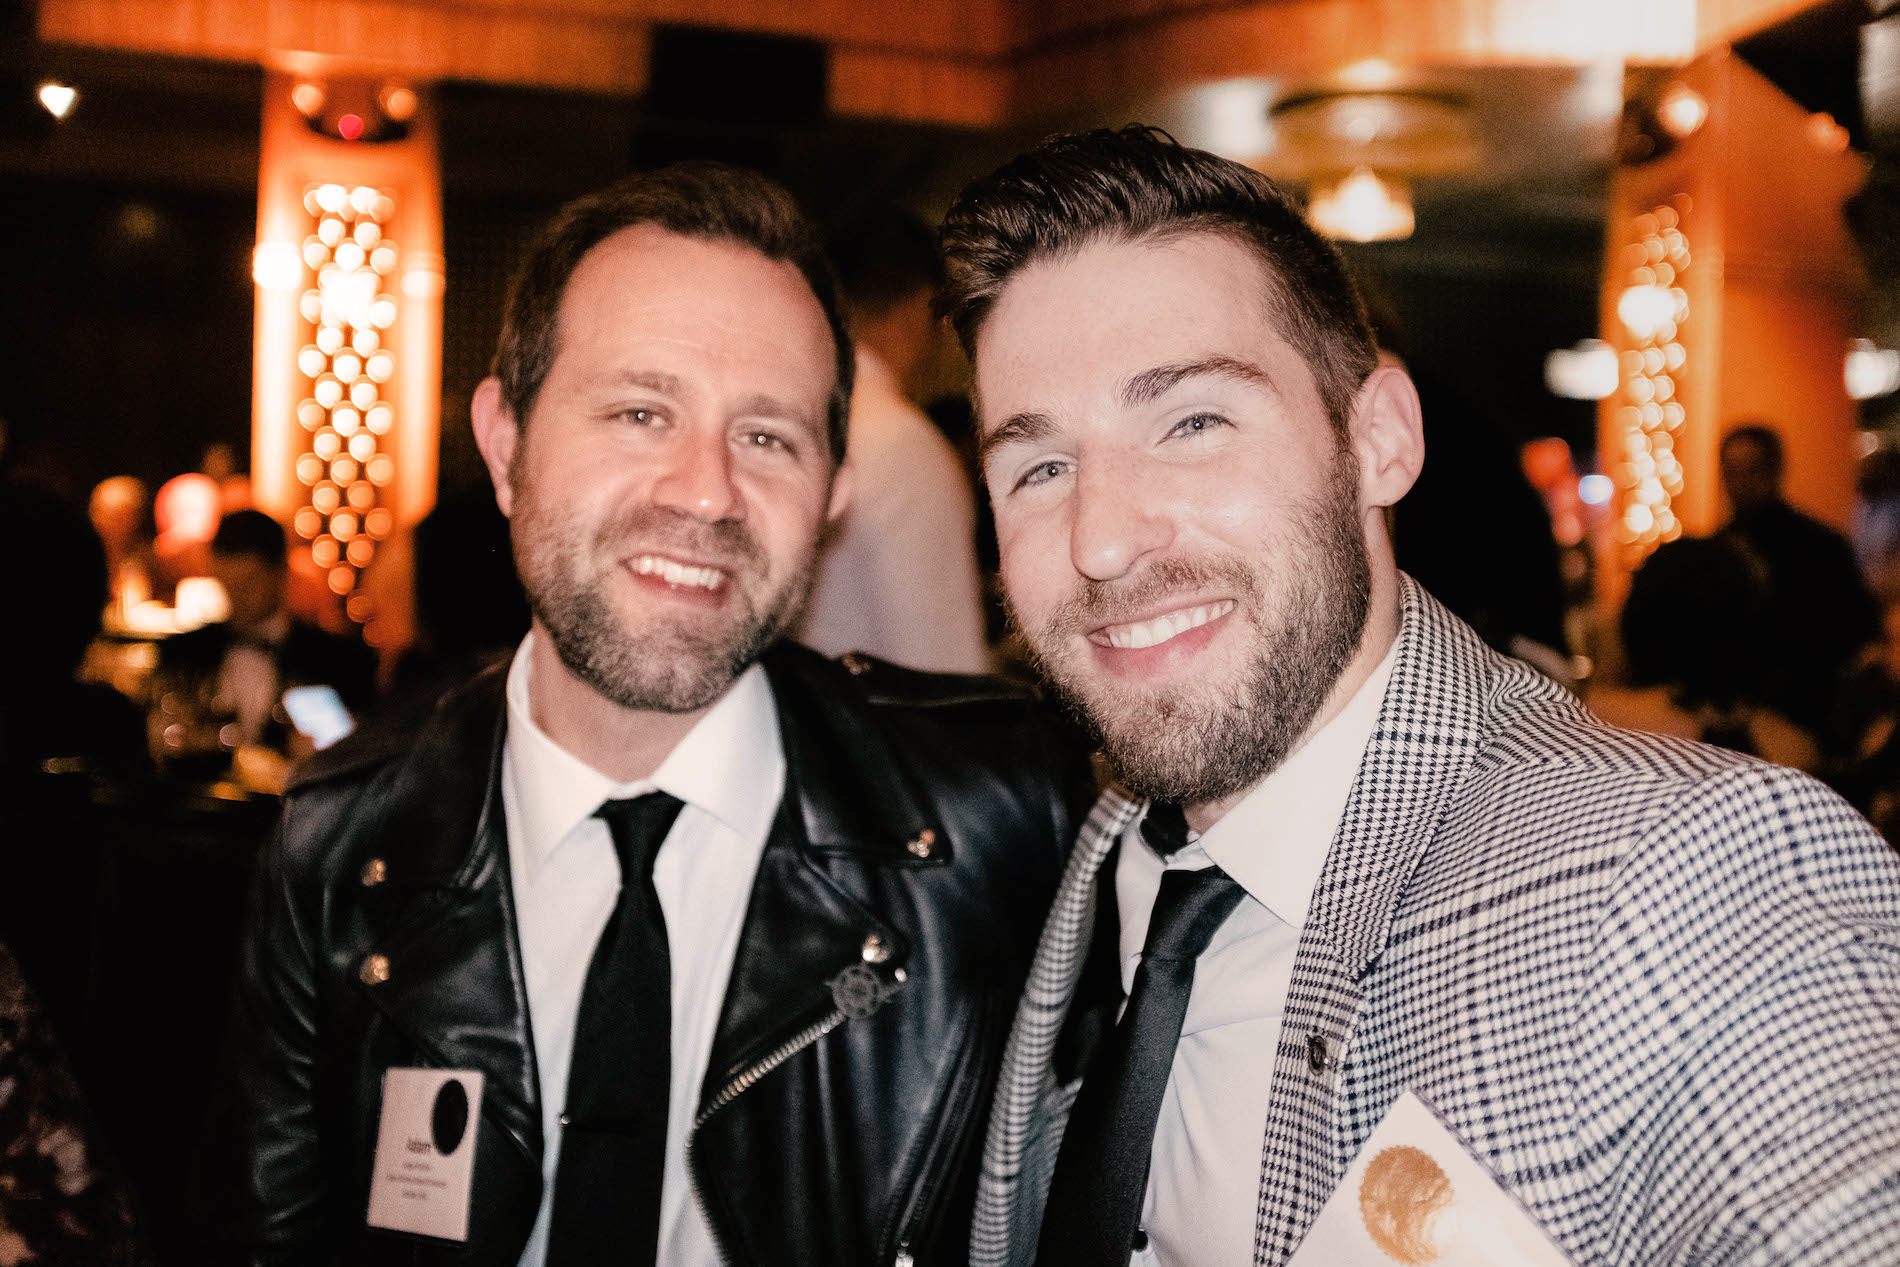 2019.06.06_PRSA Silver Anvil Awards_2019_Hotel Edison, Edison Ballroom, New York City_Photos_Ceremony 04 Adam and Ben from Top Hat_brightness edited.jpg